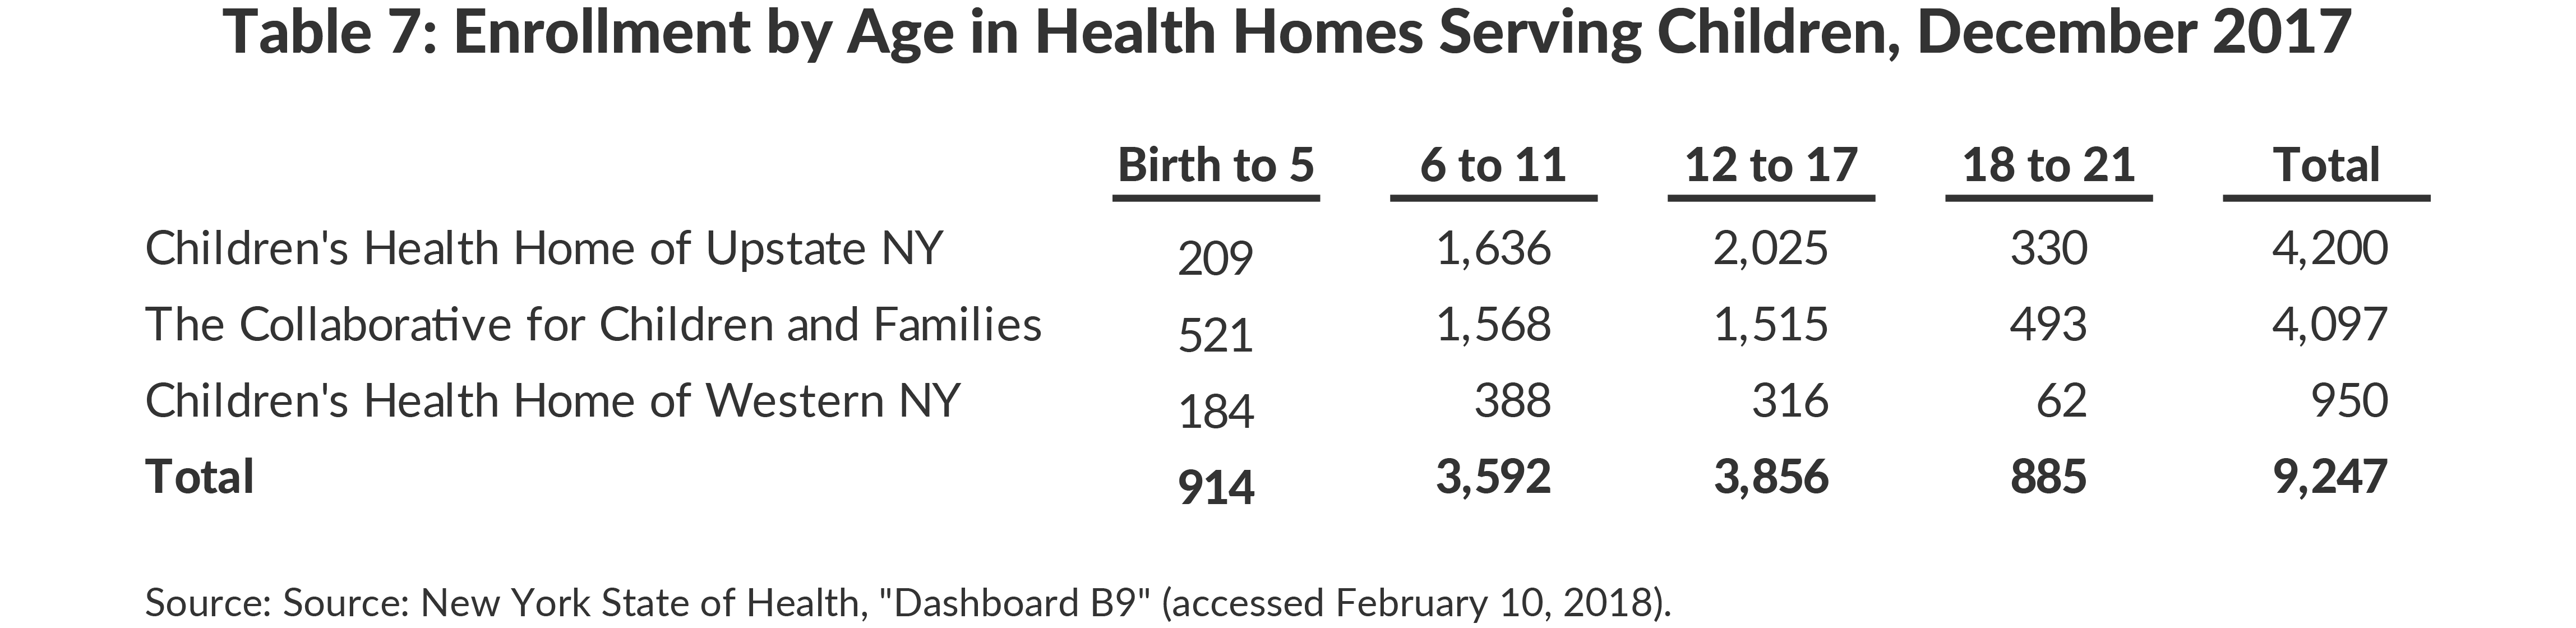 Table 7: Enrollment by Age in Health Homes Serving Children, December 2017